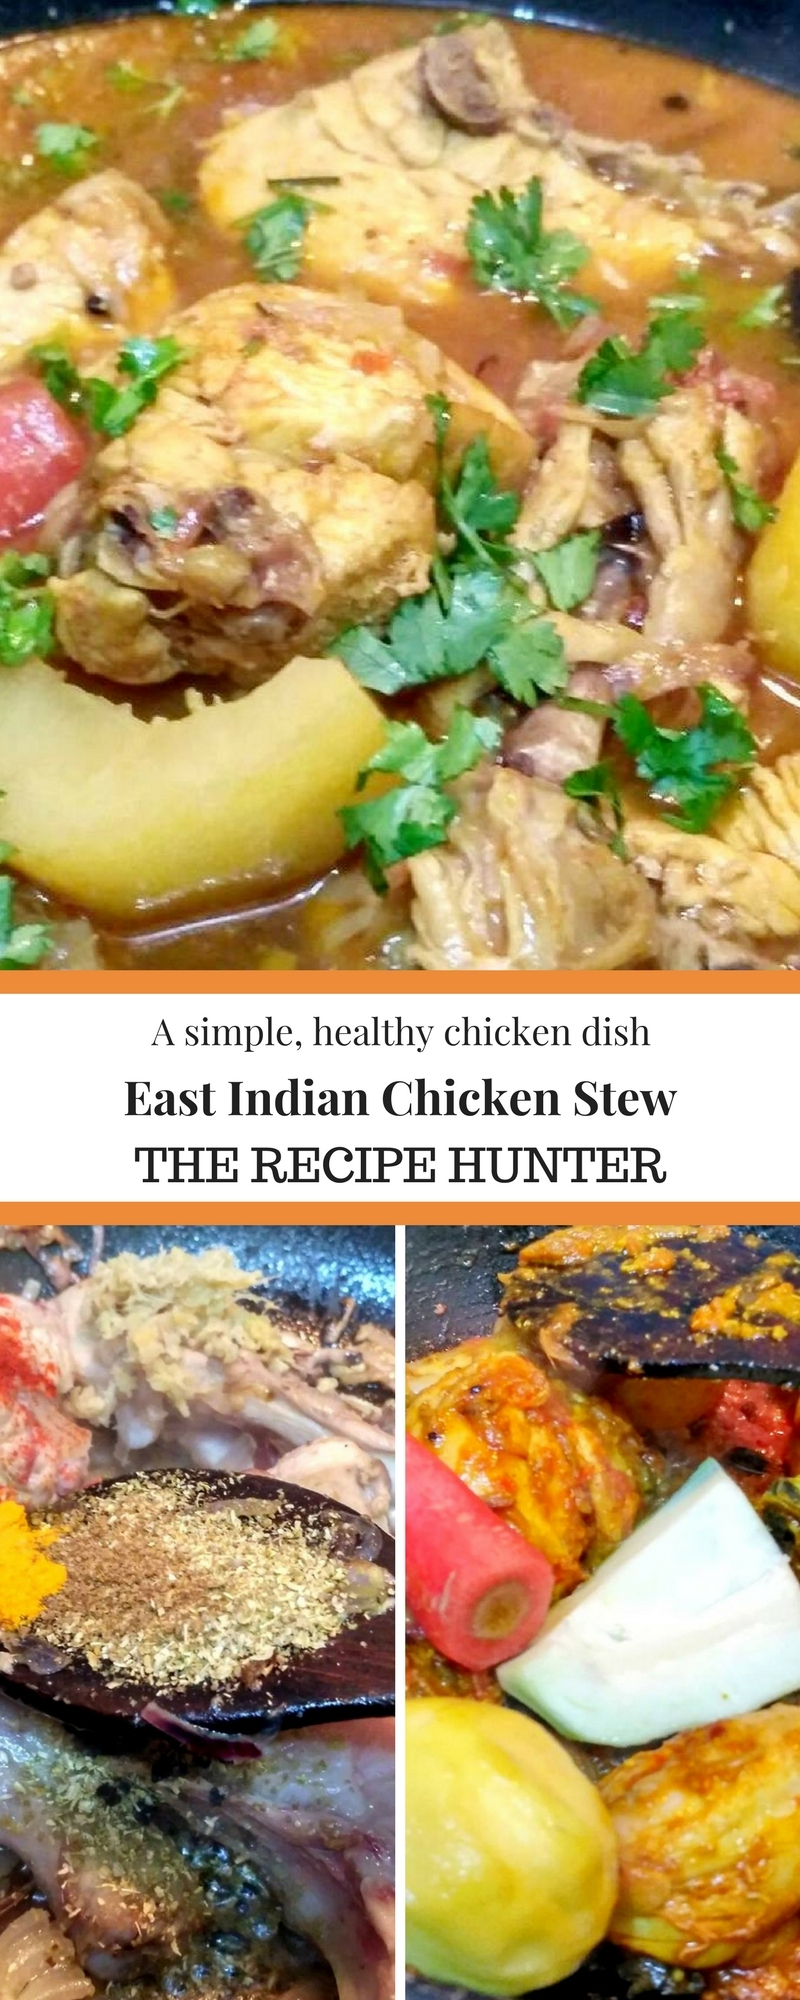 East Indian Chicken Stew